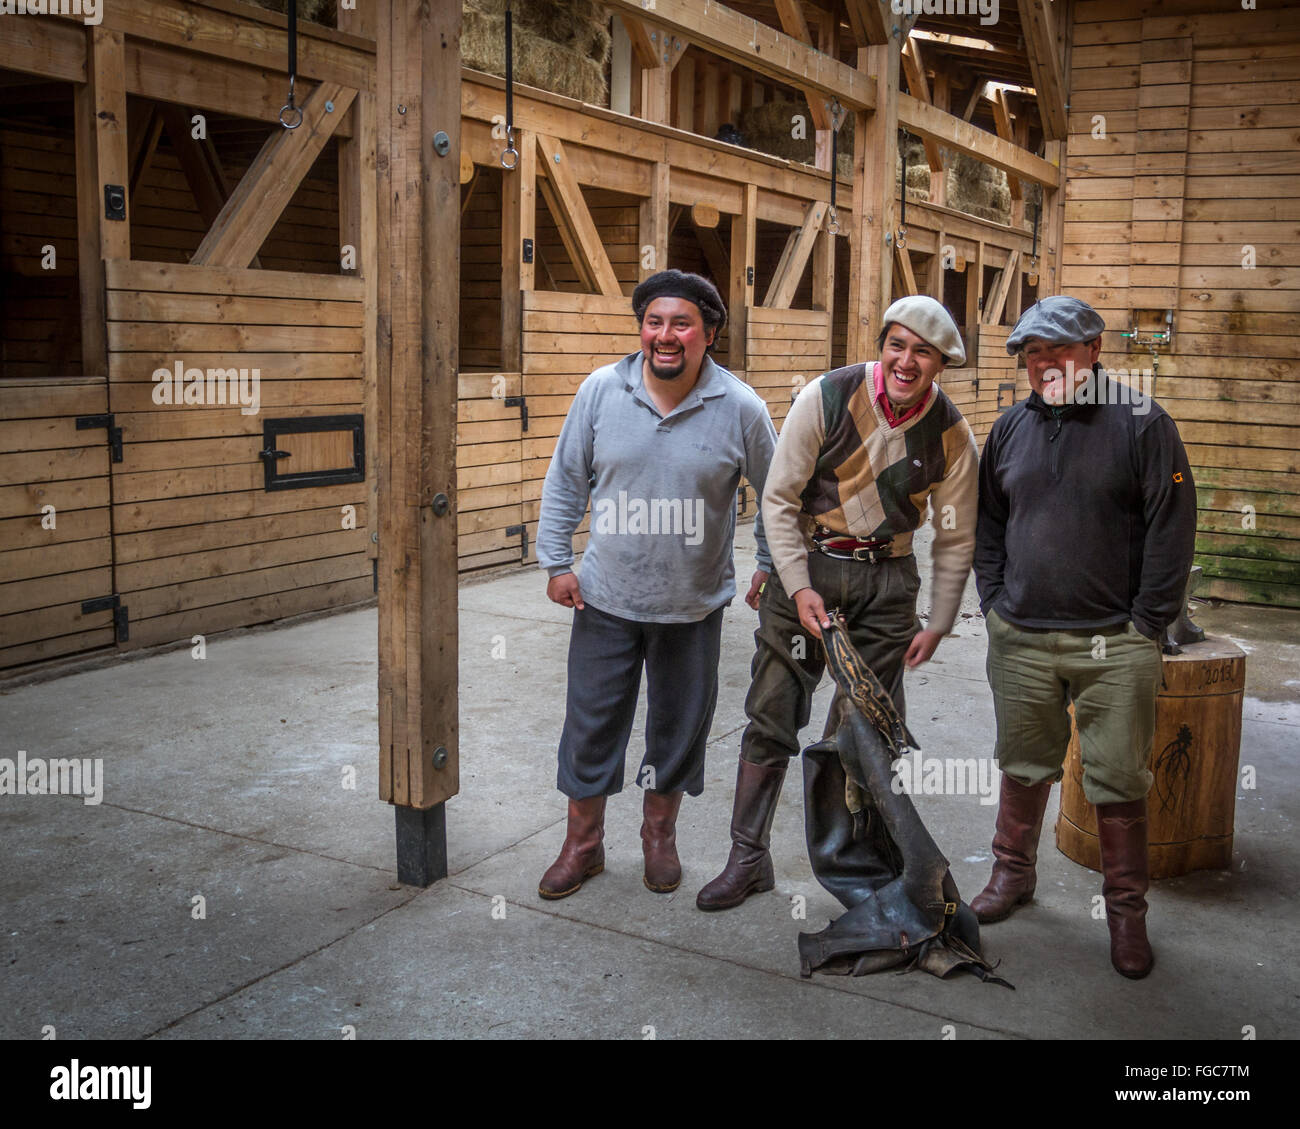 Three gauchos wearing traditional hats inside a stables smiling horse riding gear, Patagonia, Chile - Stock Image